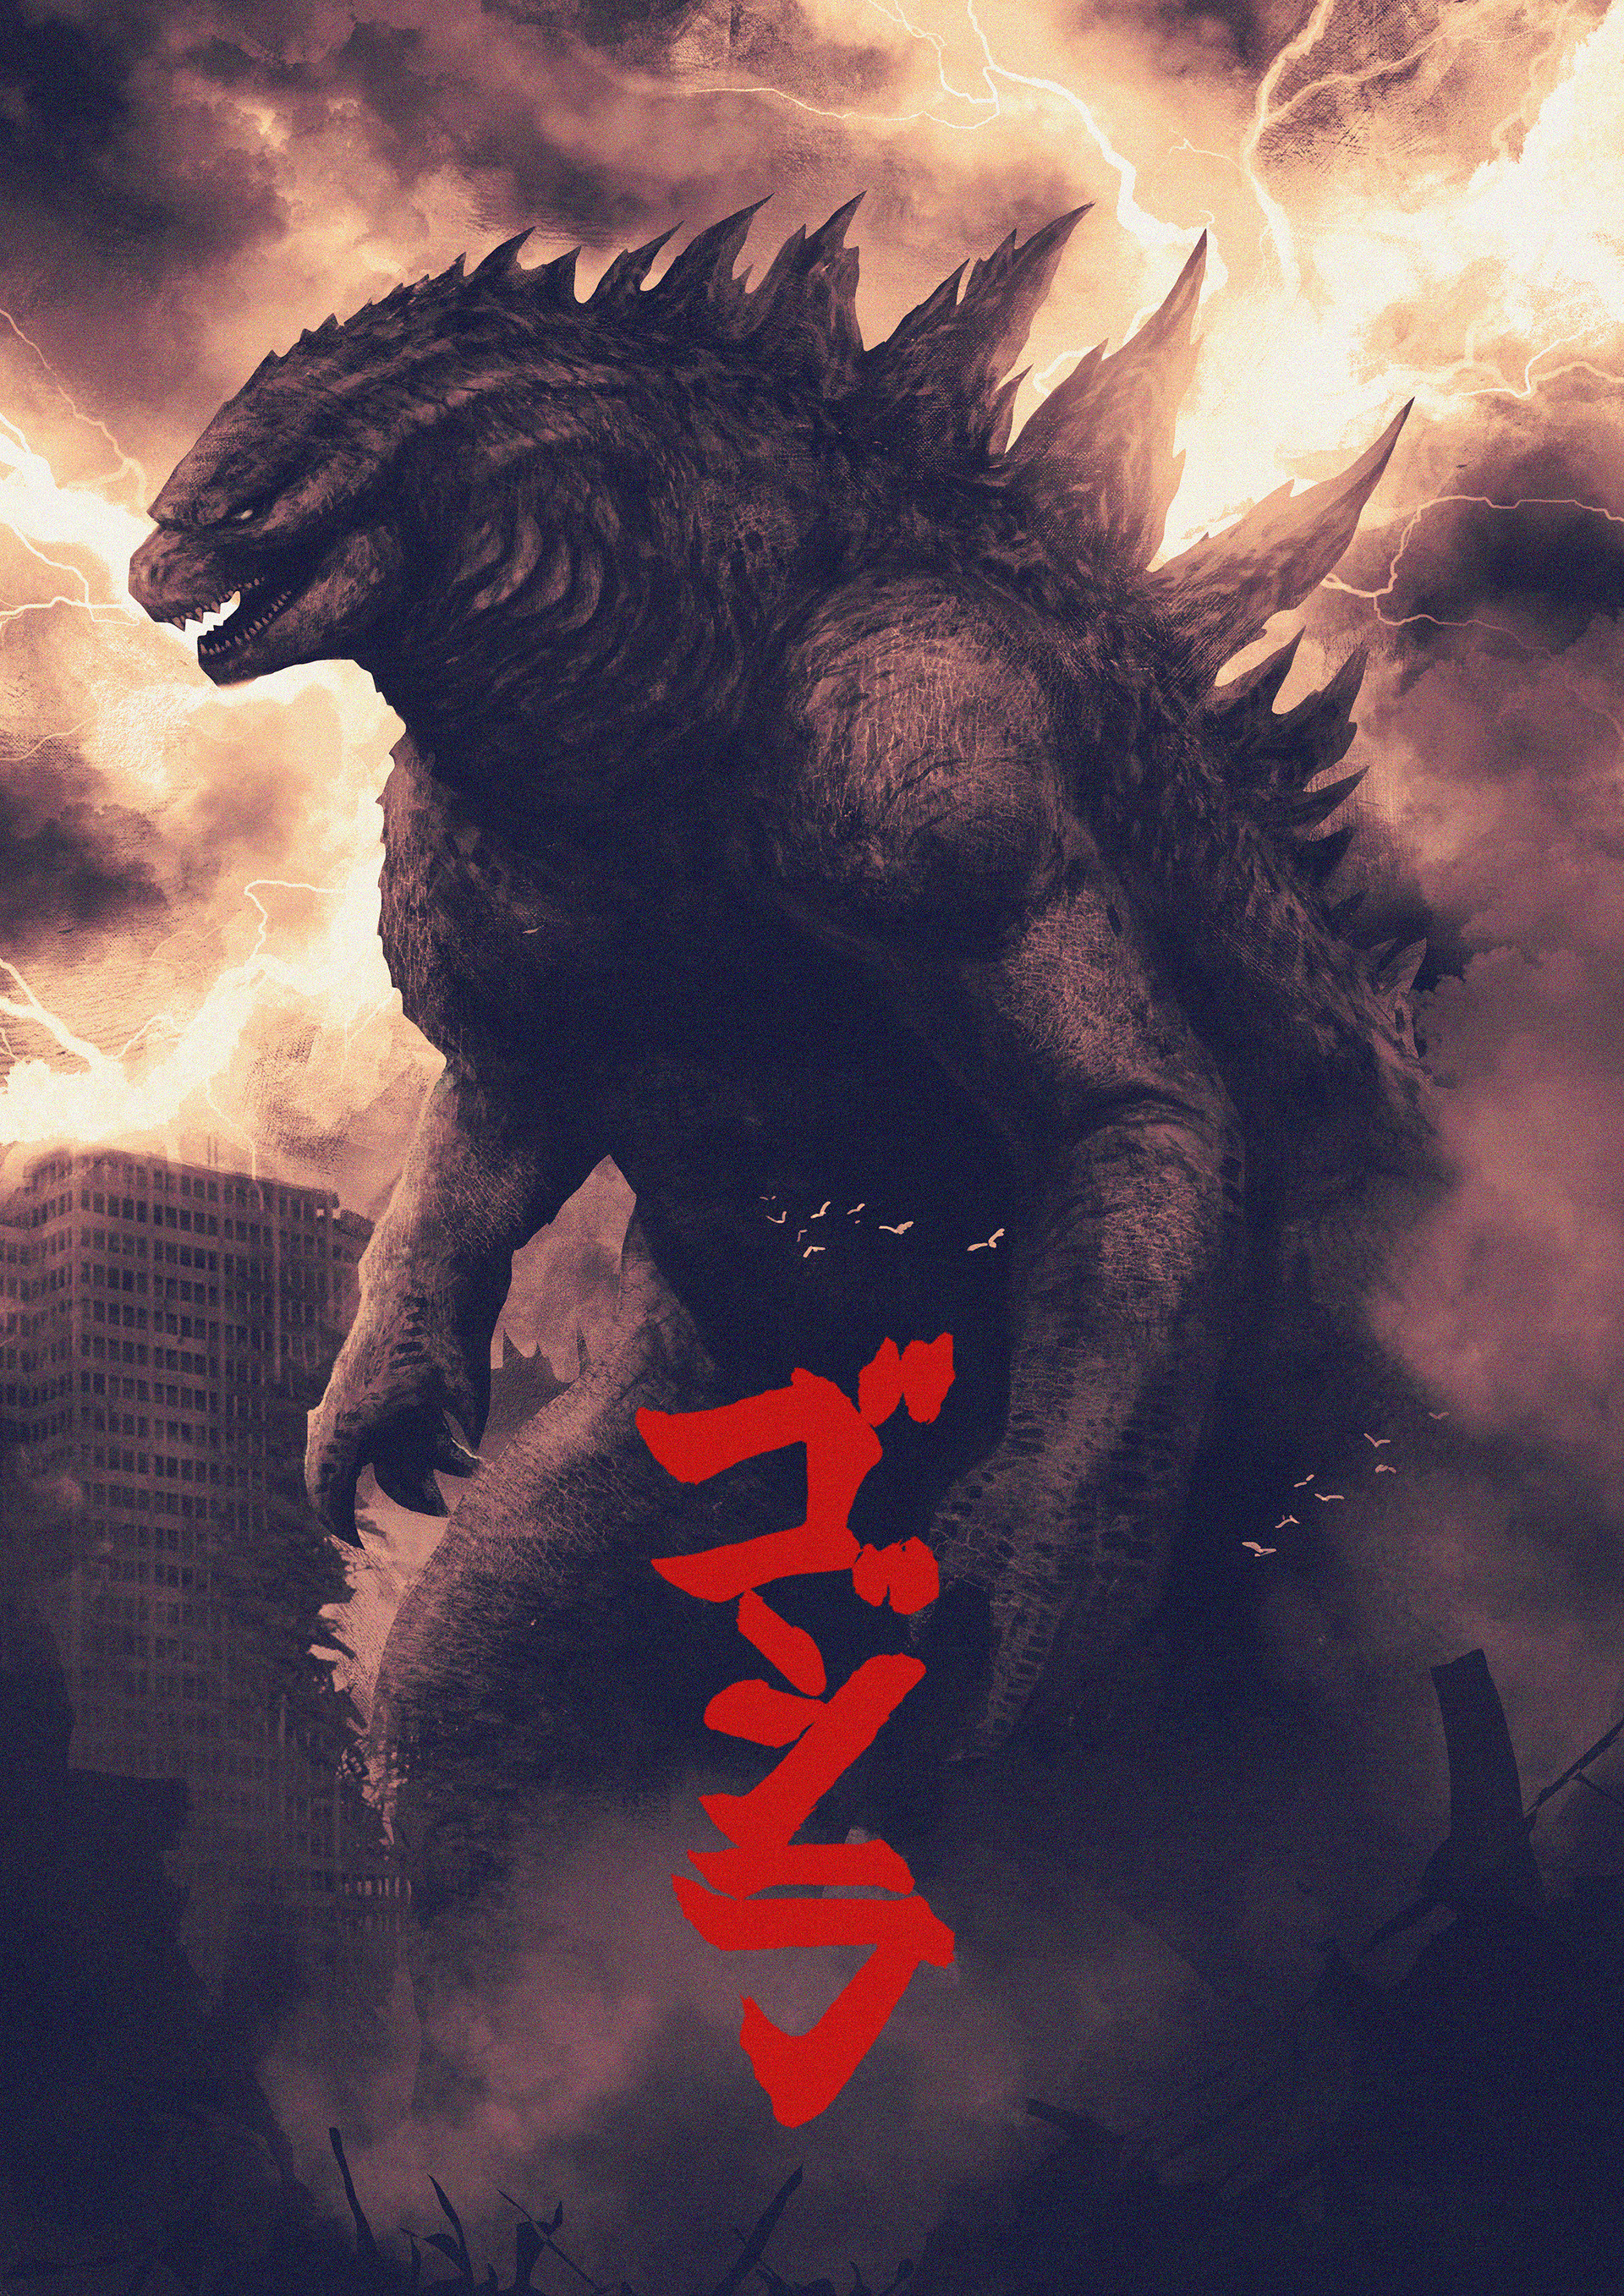 Godzilla Possibly The Best Known Of Kaiju And King Monsters